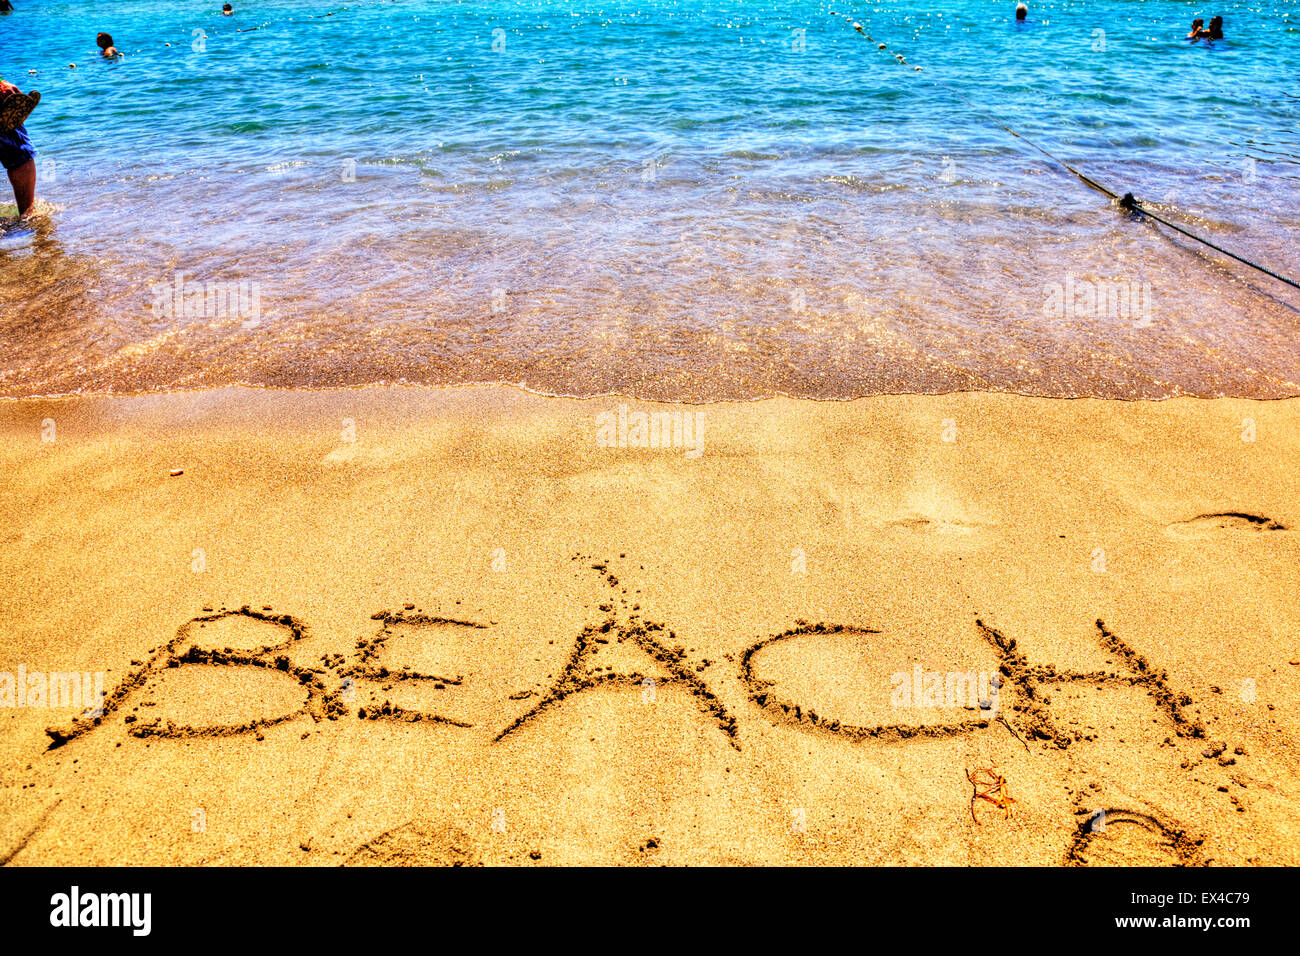 Beach word in sand written on beaches Spanish fun resort seas coast coastlines holidays vacations trips trip getaway - Stock Image